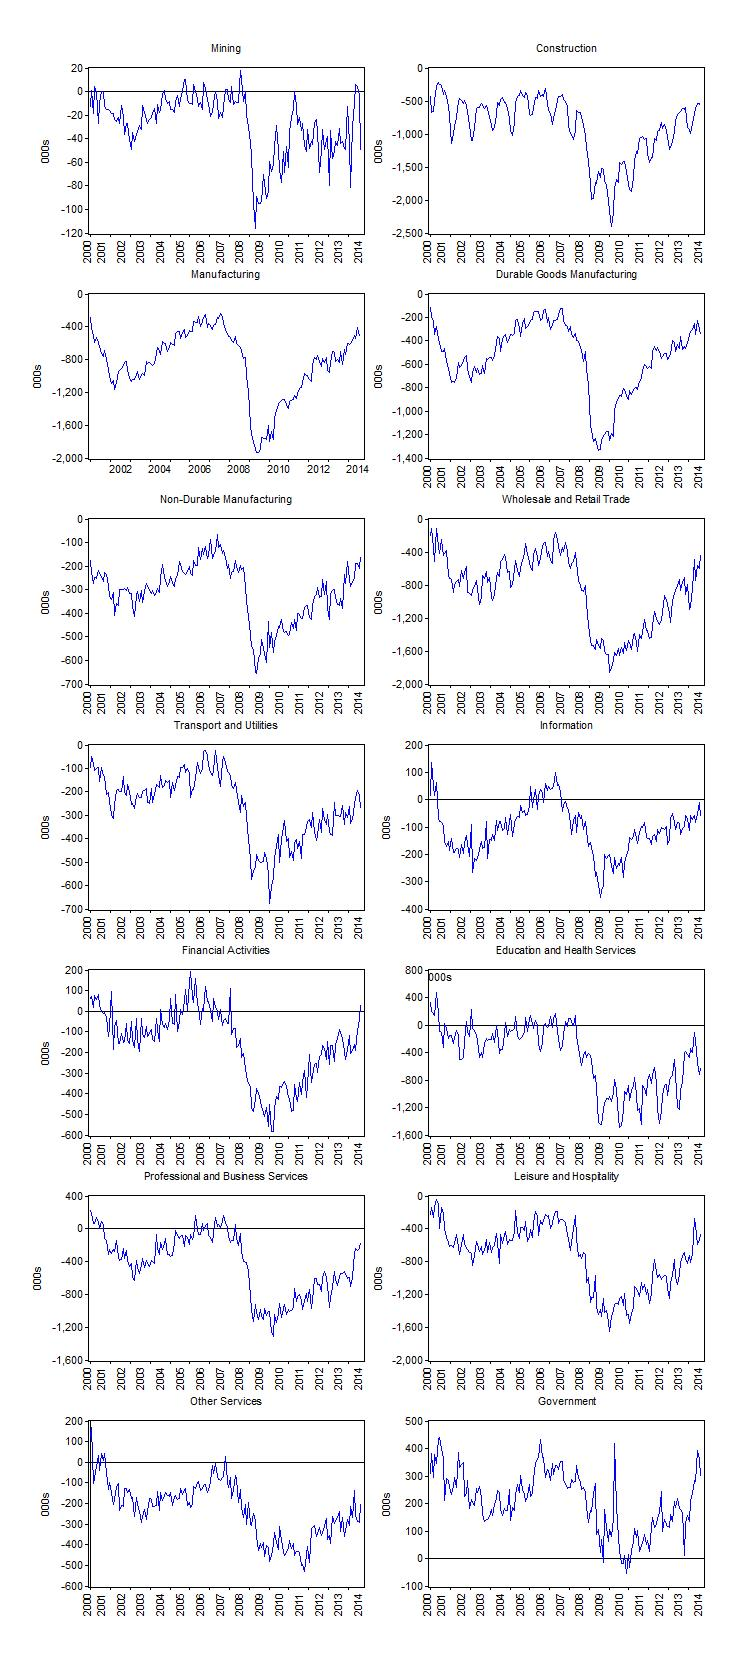 us_job_shortages_all_industries_2000_august_2014